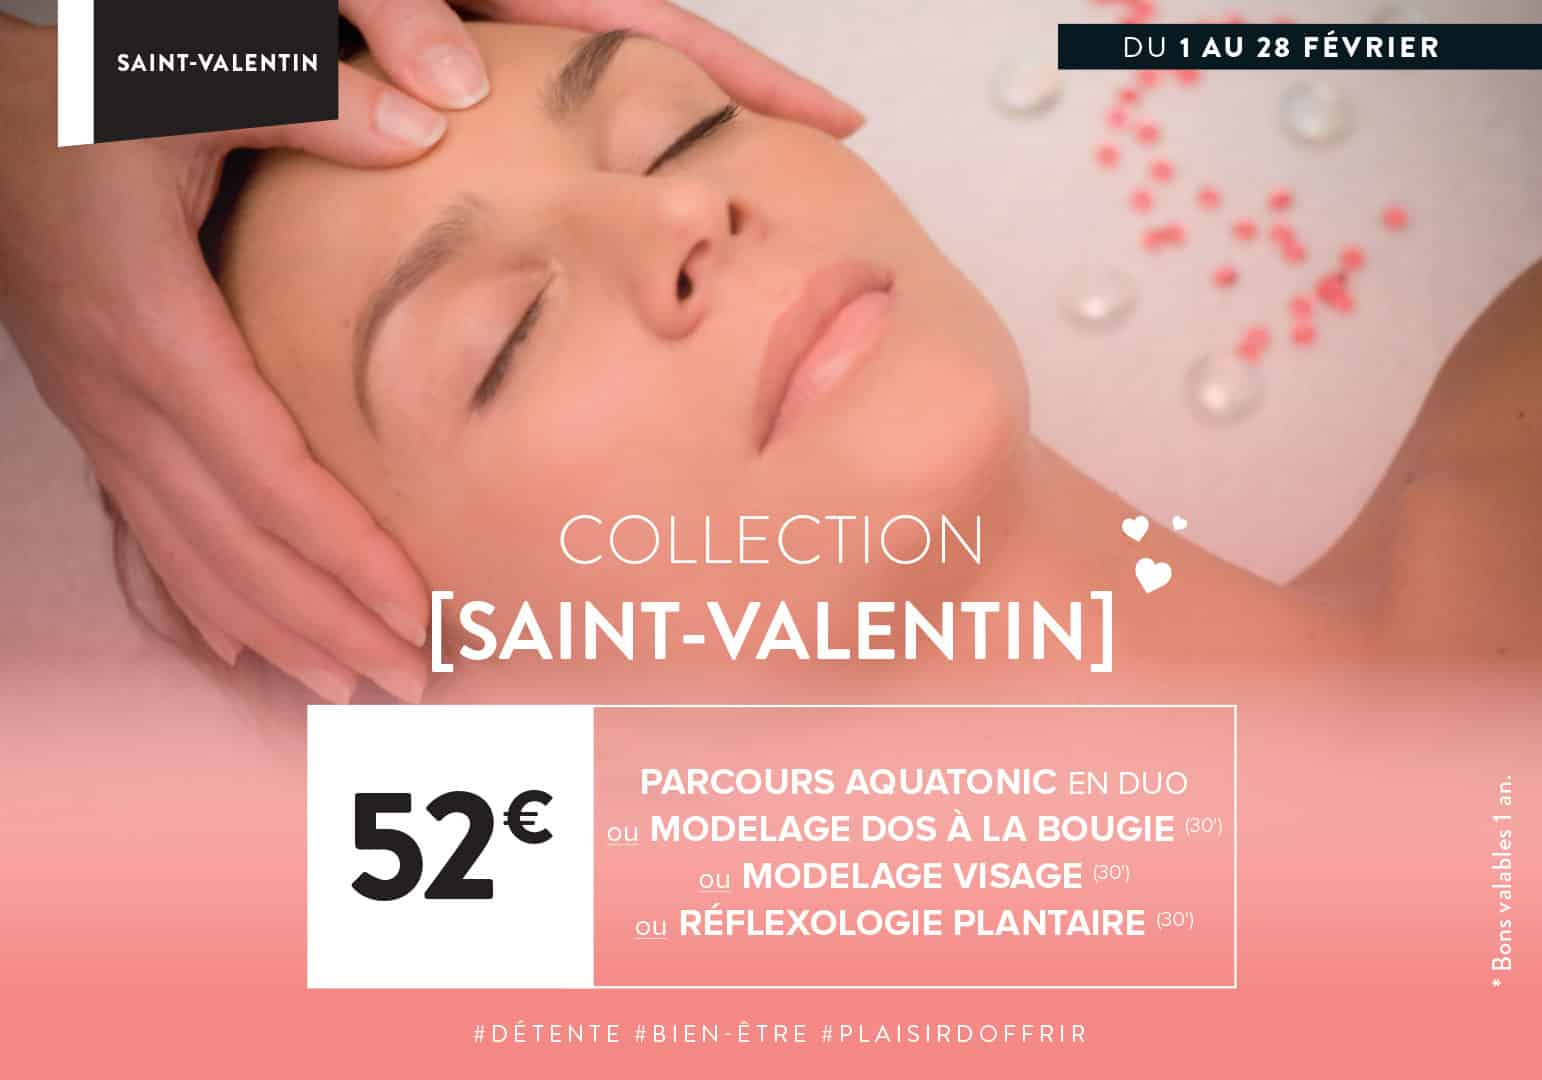 Collection Saint-Valentin